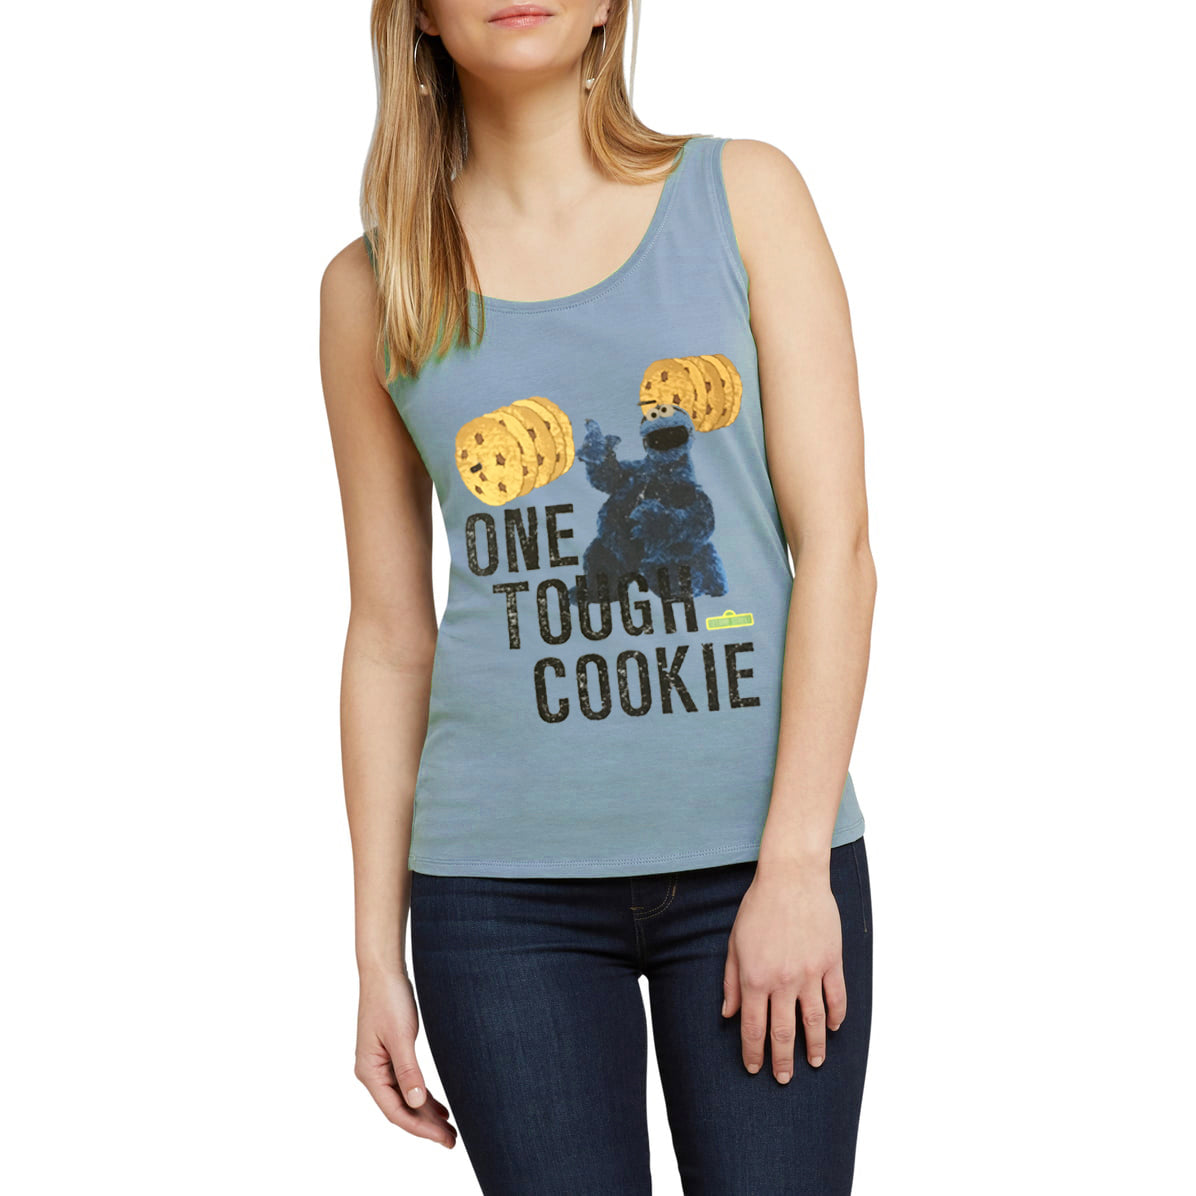 brandsego - Sesame Street Sleeveless Stylish Blouse For Ladies-Sky Blue-NA8706